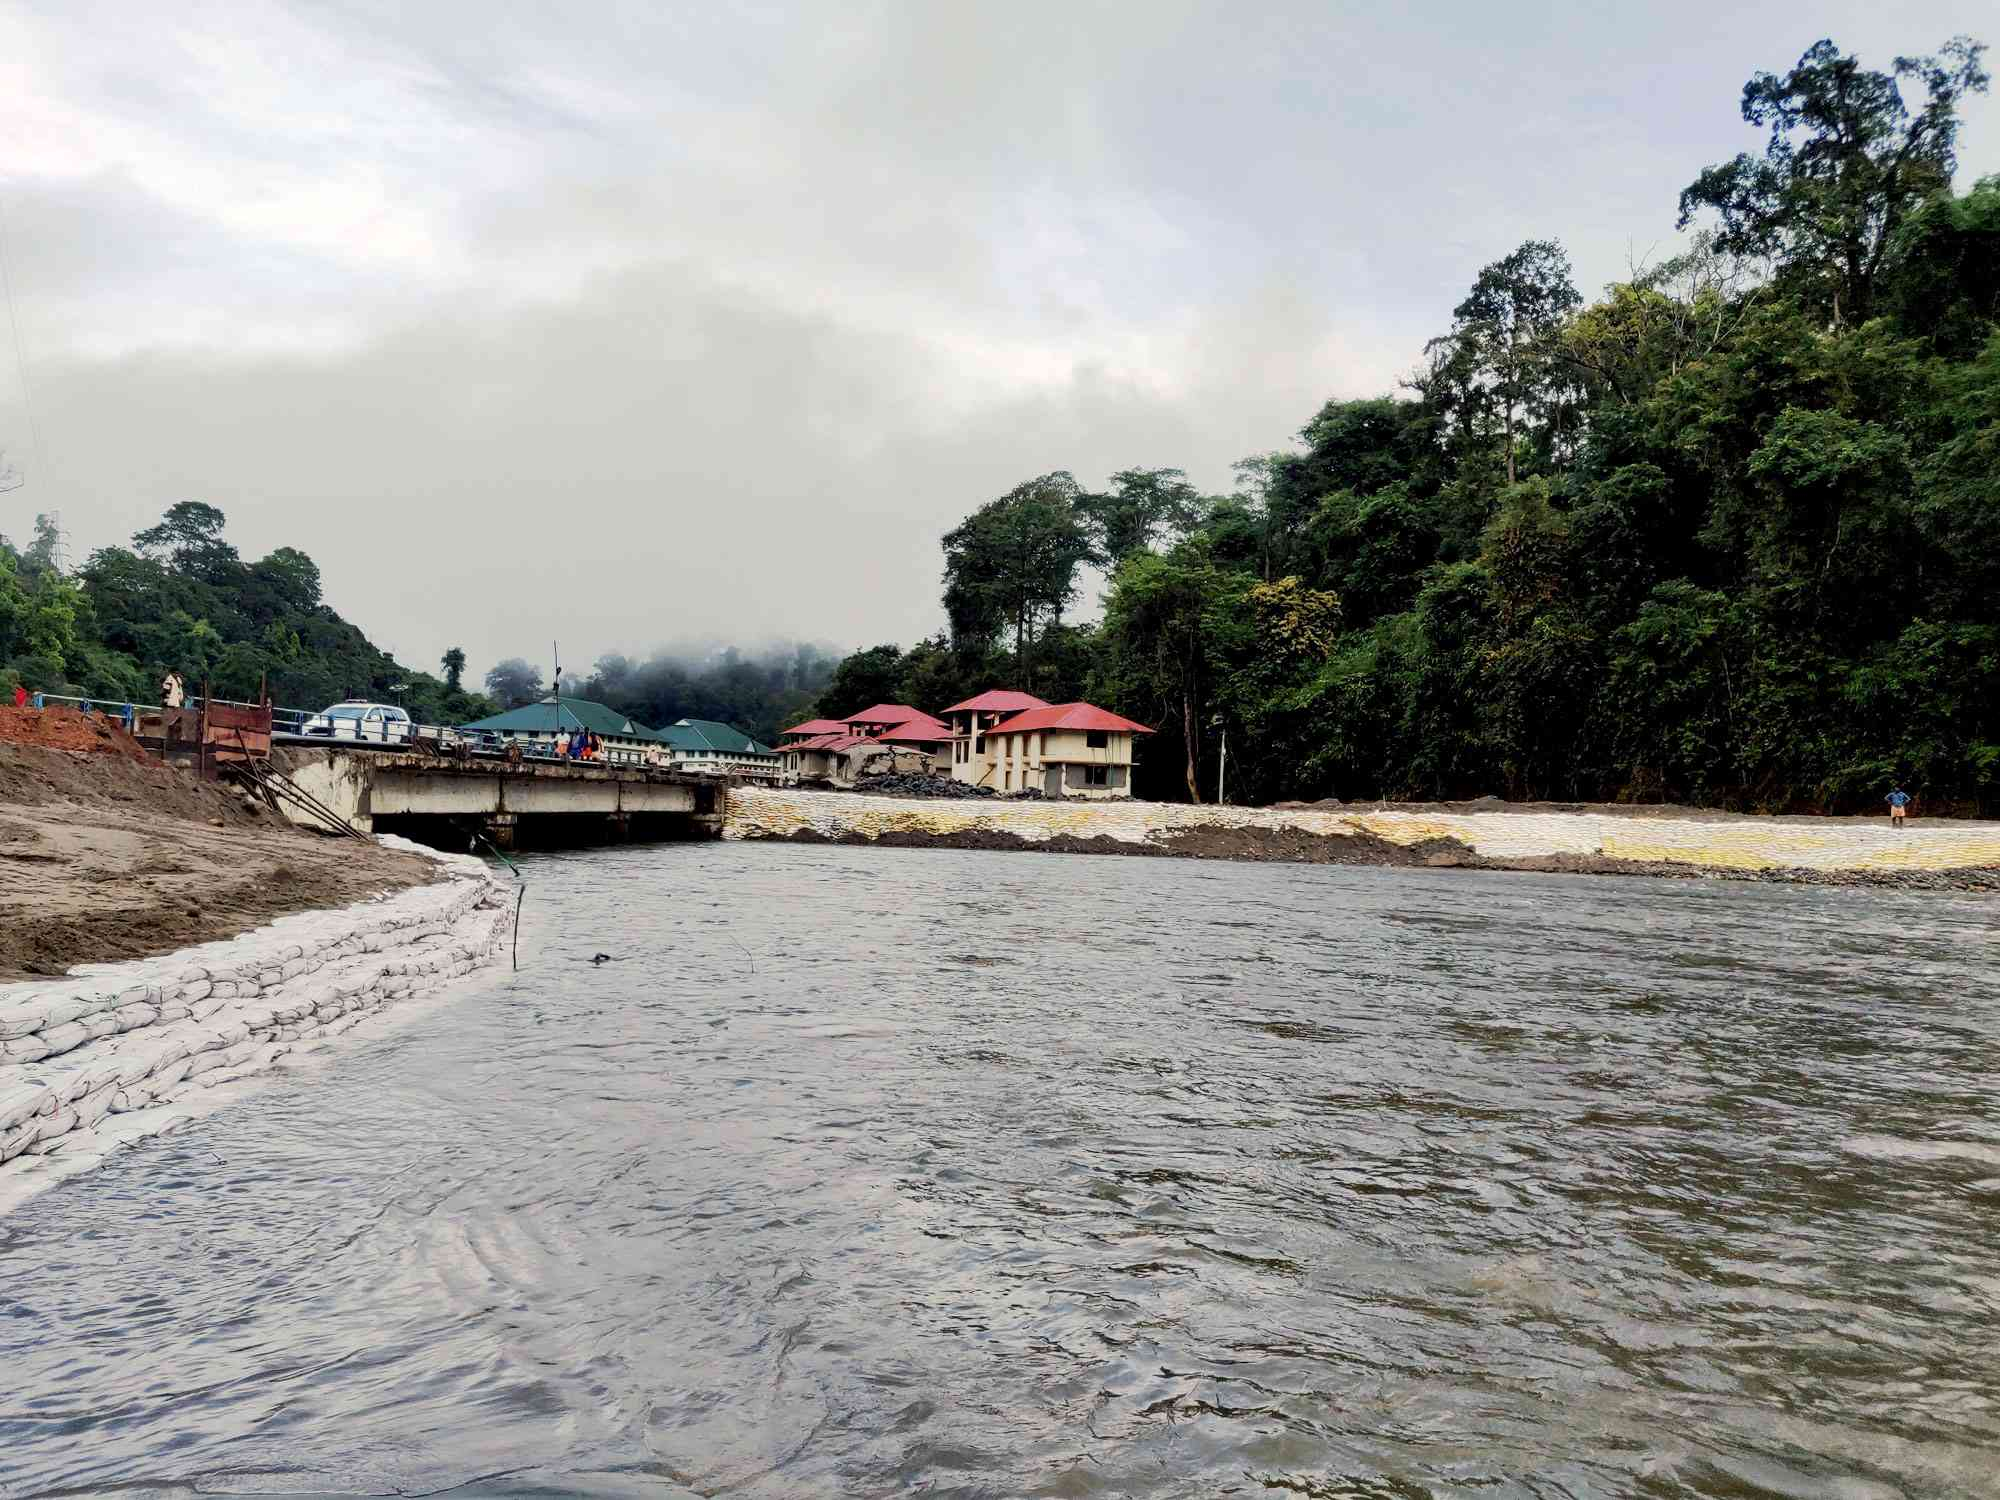 Sewage from overflow tanks contaminates the Pamba river, especially during the peak pilgrim season. Photo credit: TA Ameerudheen